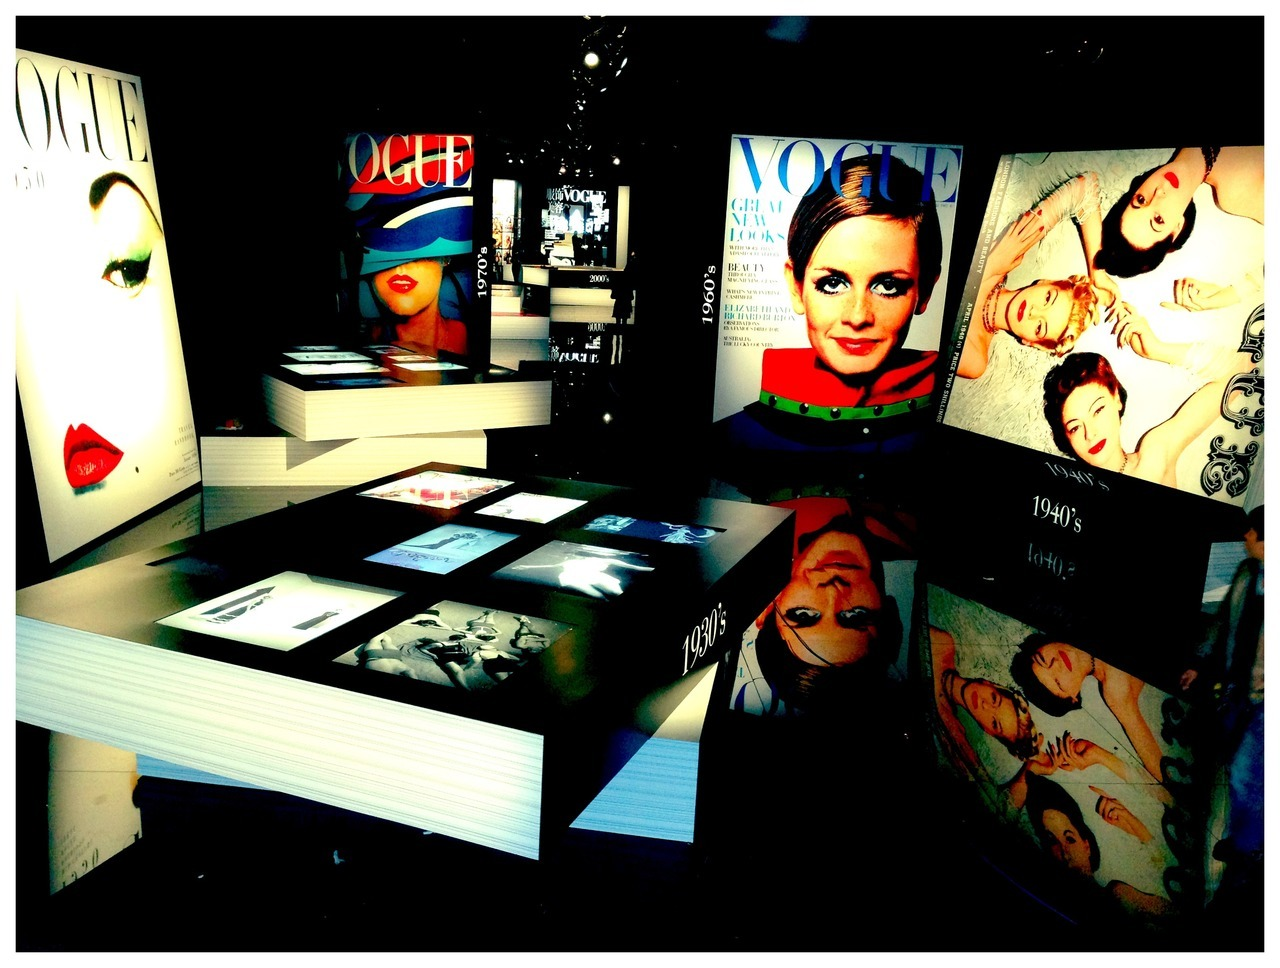 120 years of Vogue and 7 years of Vogue China Exhibition  Designed by Alexandre de Betak  Opened last night in Beijing  Over-sized Vogue covers